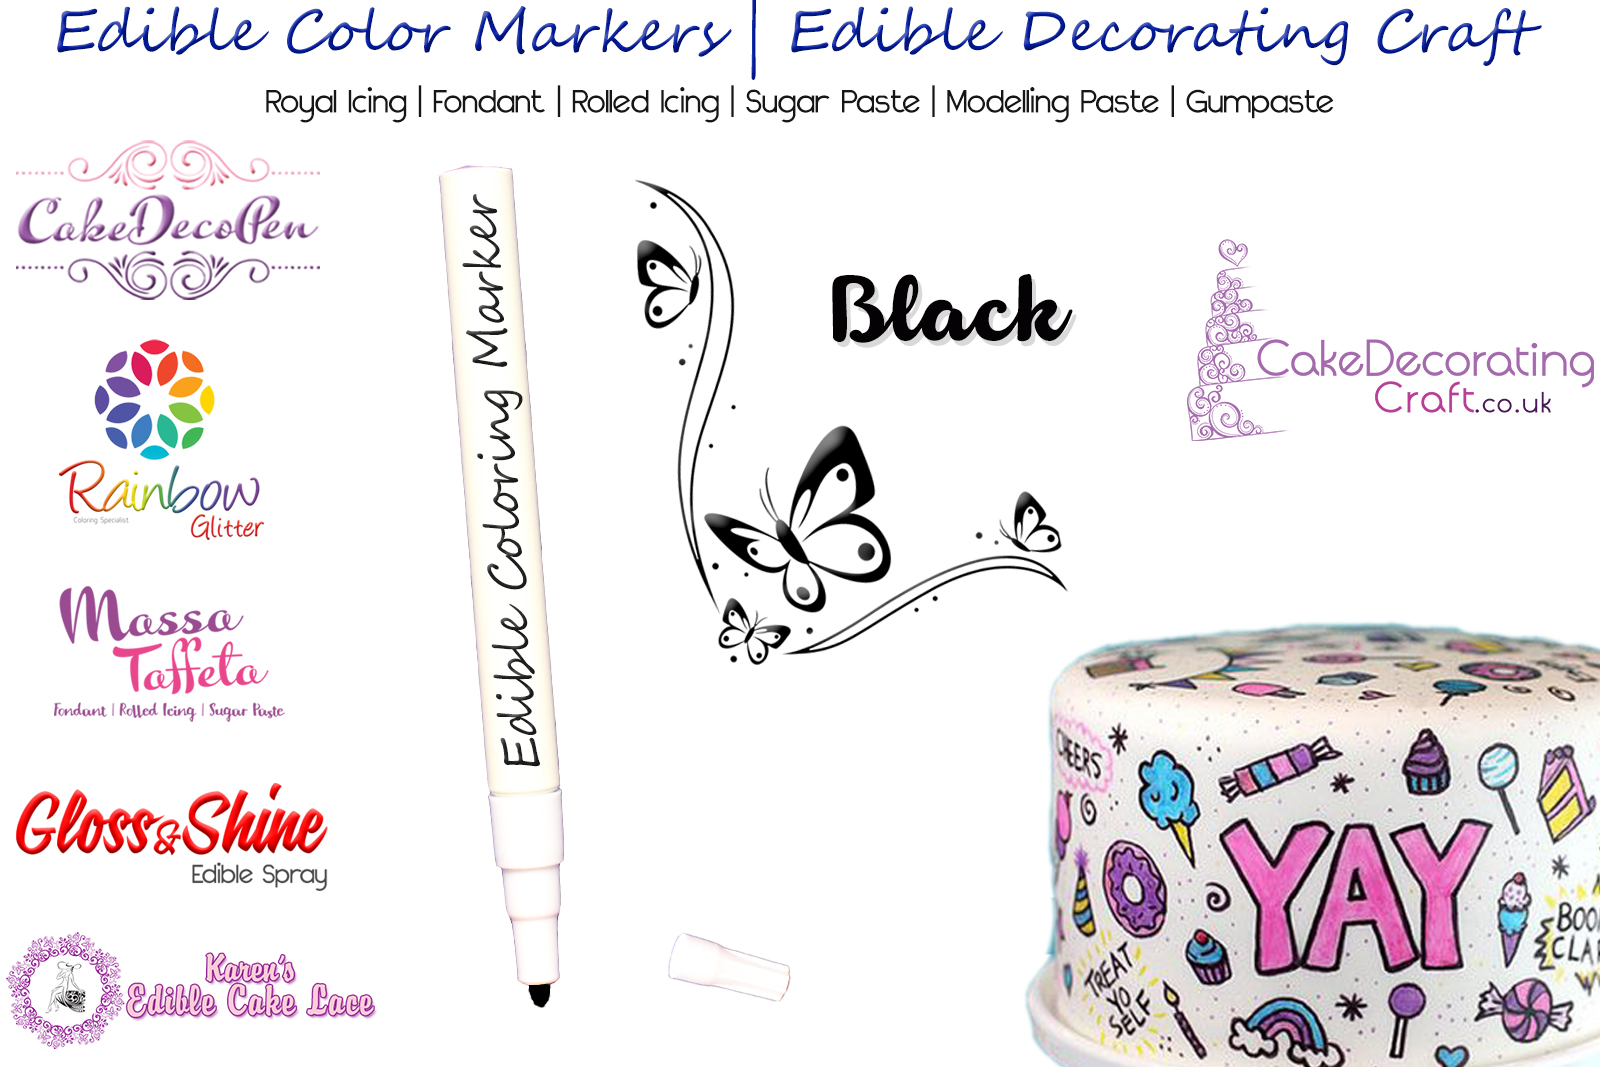 Cake Decorating Craft | Icing Pen | Icing Colouring Marker | Edible Painting Ink | Black | Christmas Cake Cupcake Decorating Craft